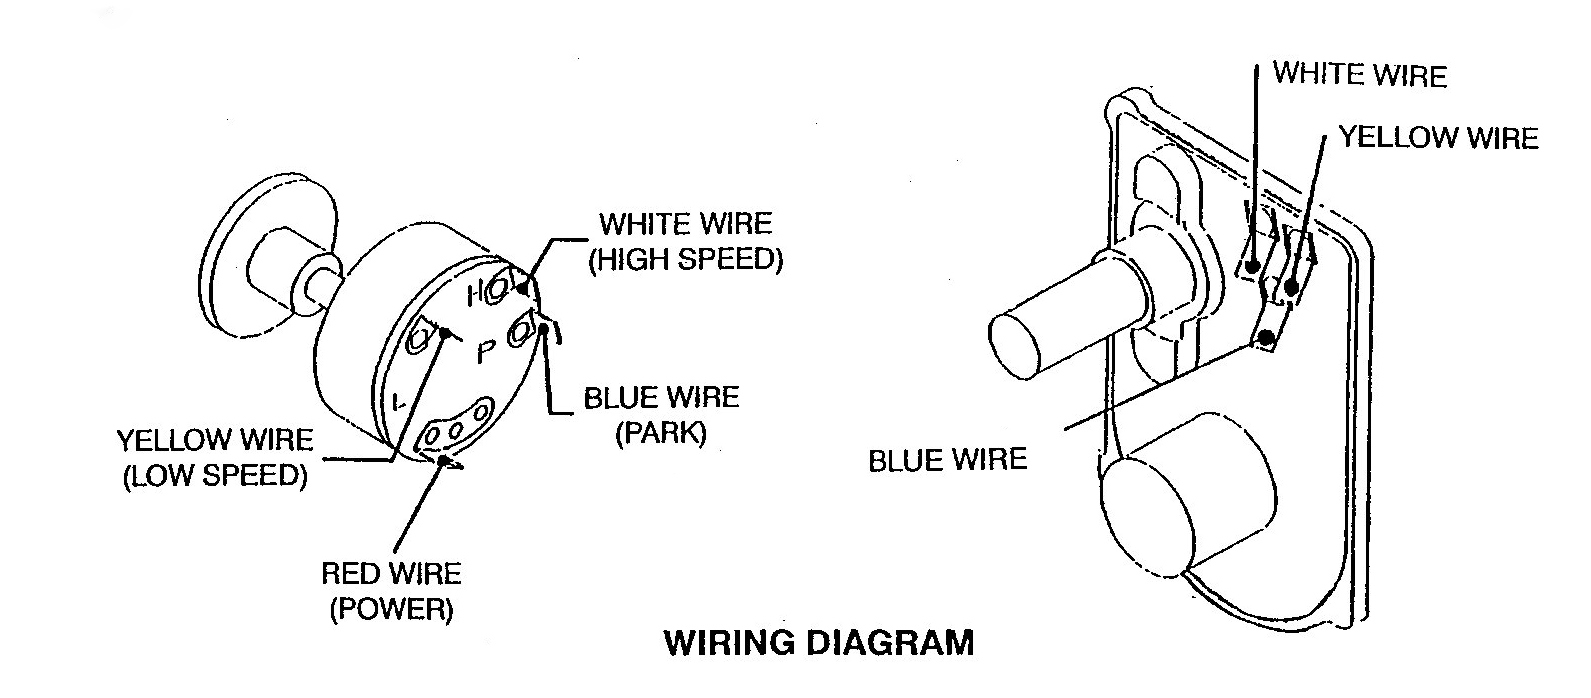 1966 Jeep Wiring Diagram Auto Electrical 1968 Triumph Spitfire Related With